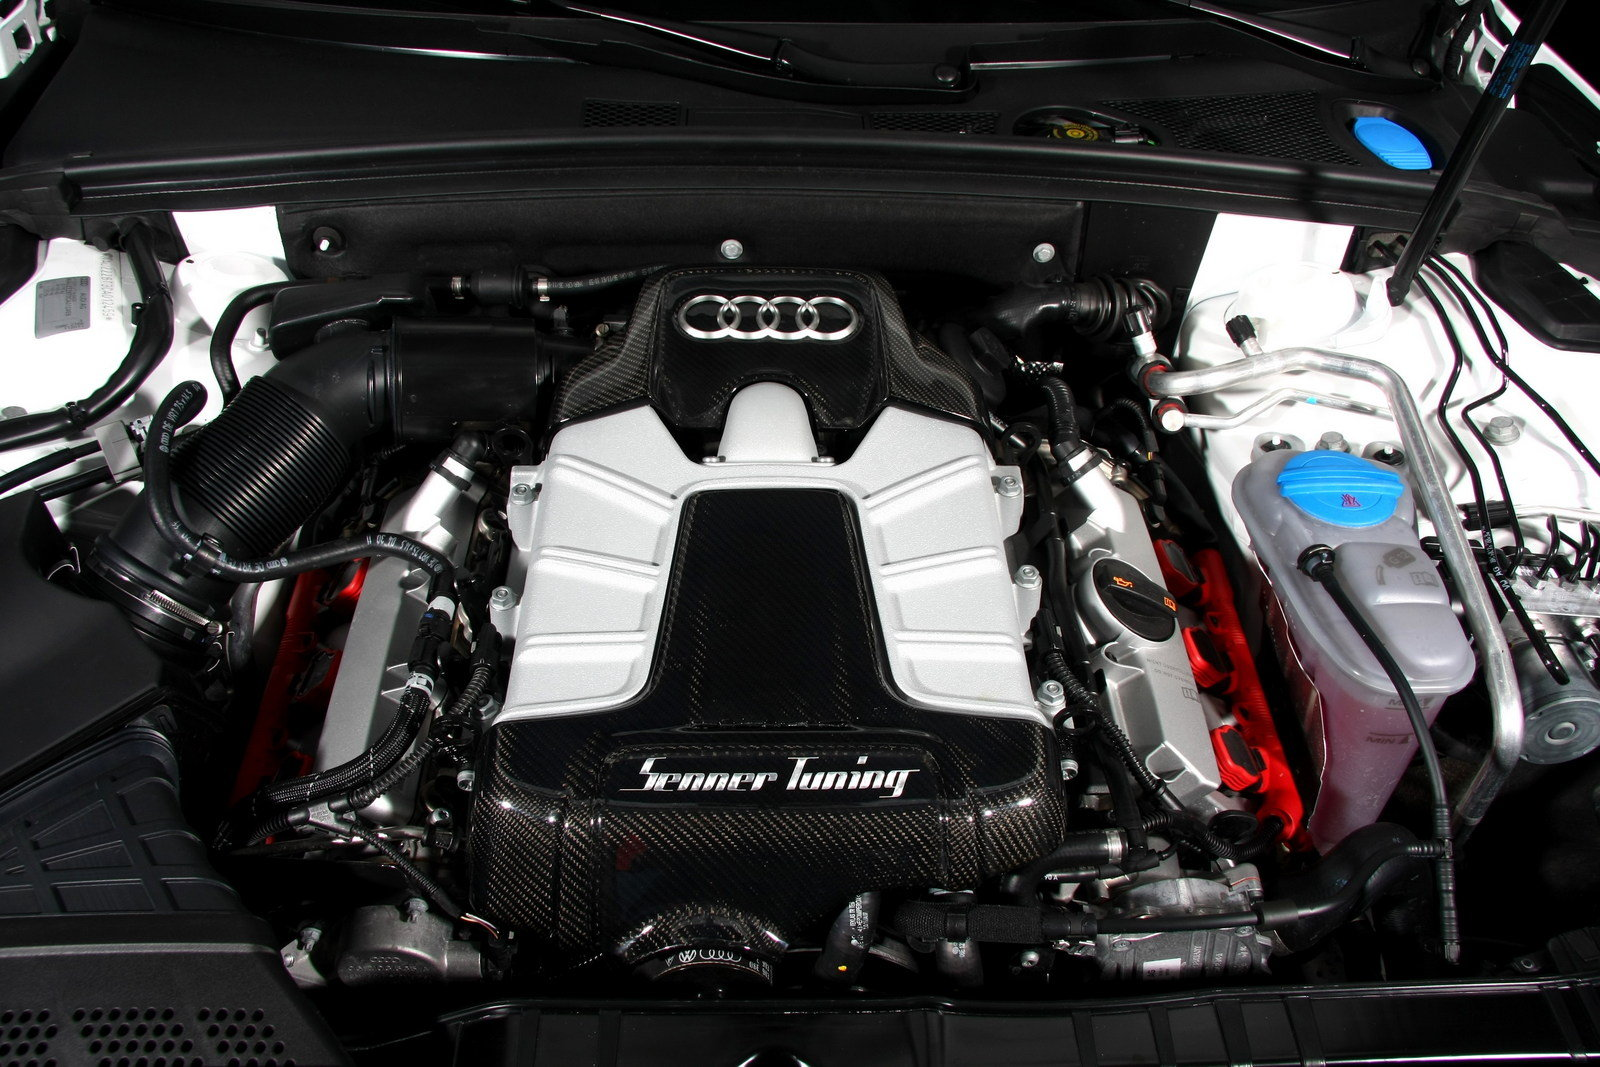 http://pictures.topspeed.com/IMG/crop/201306/audi-s5-convertible--7_1600x0w.jpg